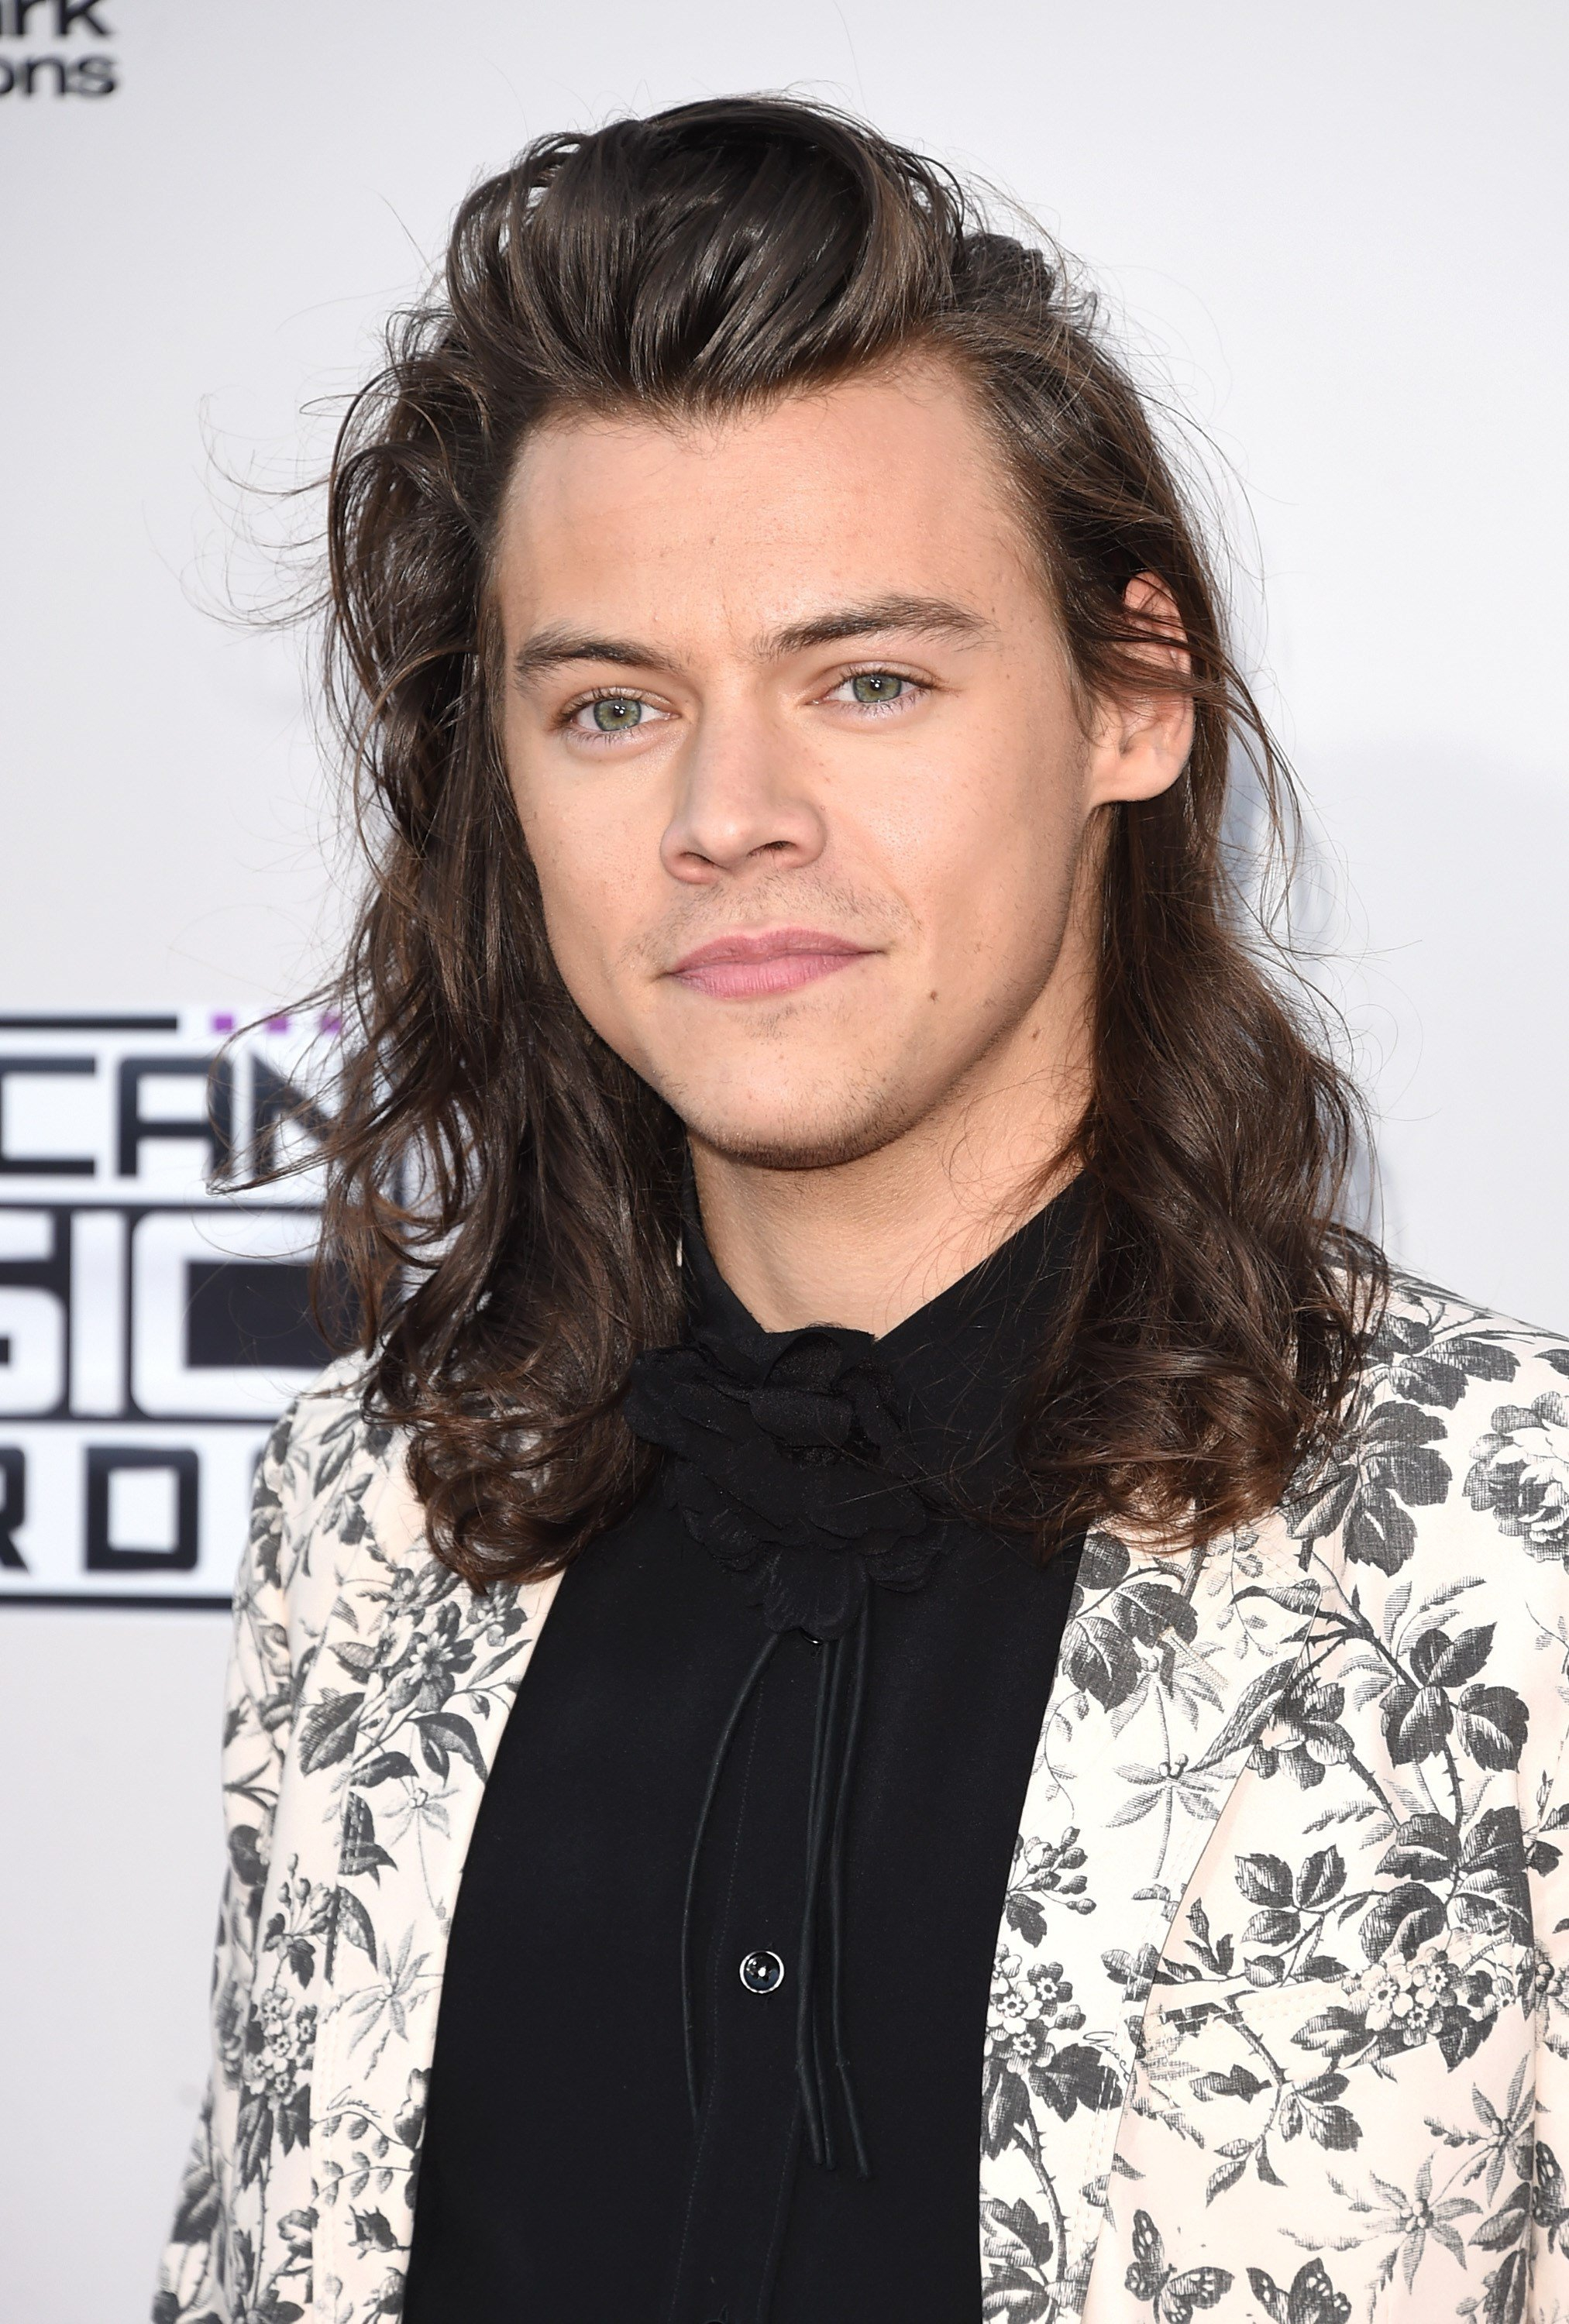 Harry Styles gespot in Nederland!